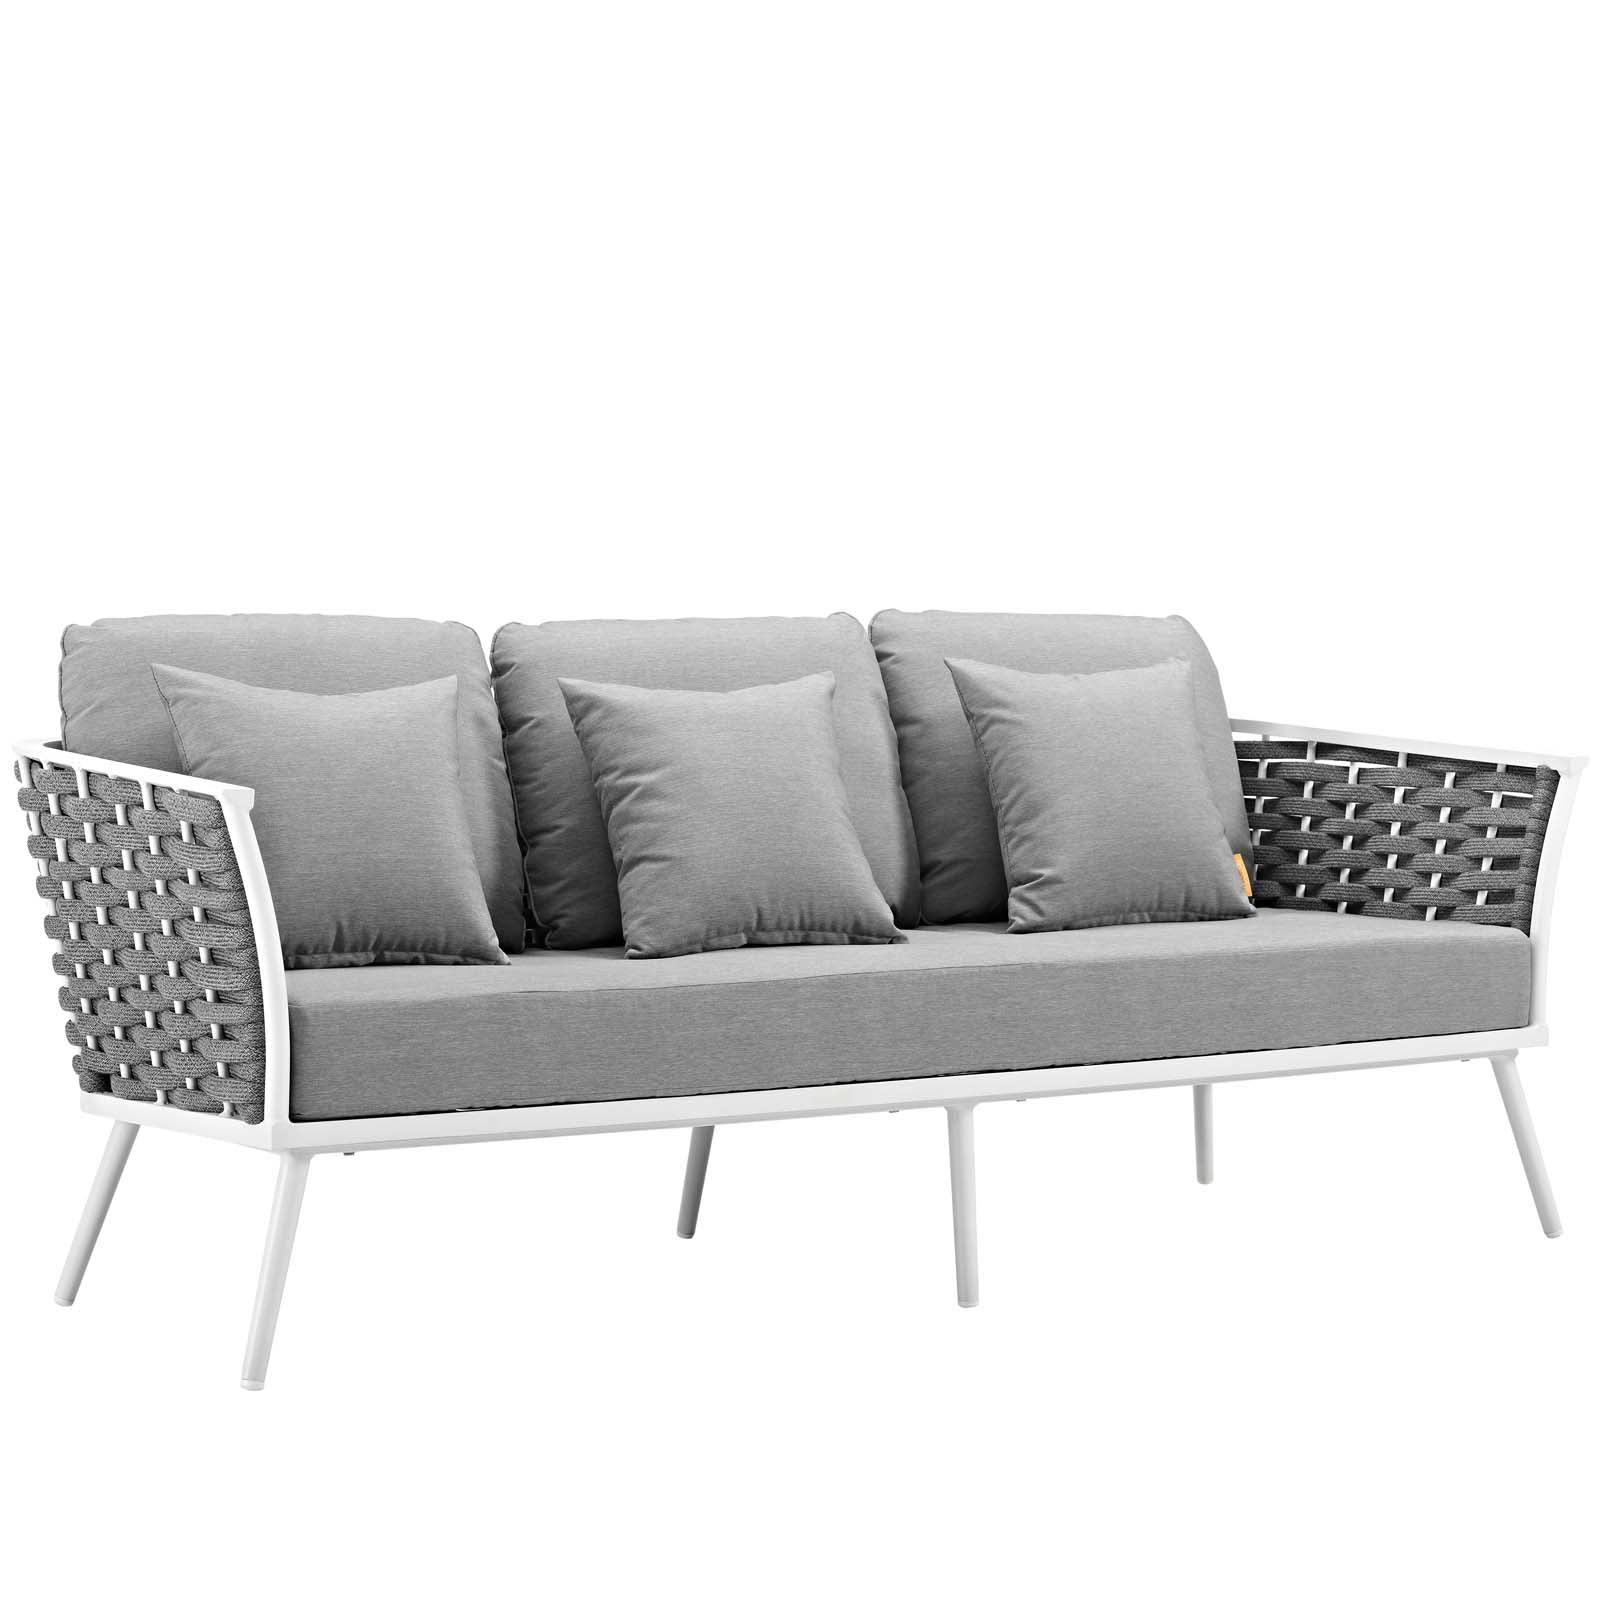 Modway Outdoor Sofas on sale. EEI-3020-WHI-GRY Stance Outdoor Patio  Aluminum Sofa only Only $954.80 at Contemporary Furniture Warehouse